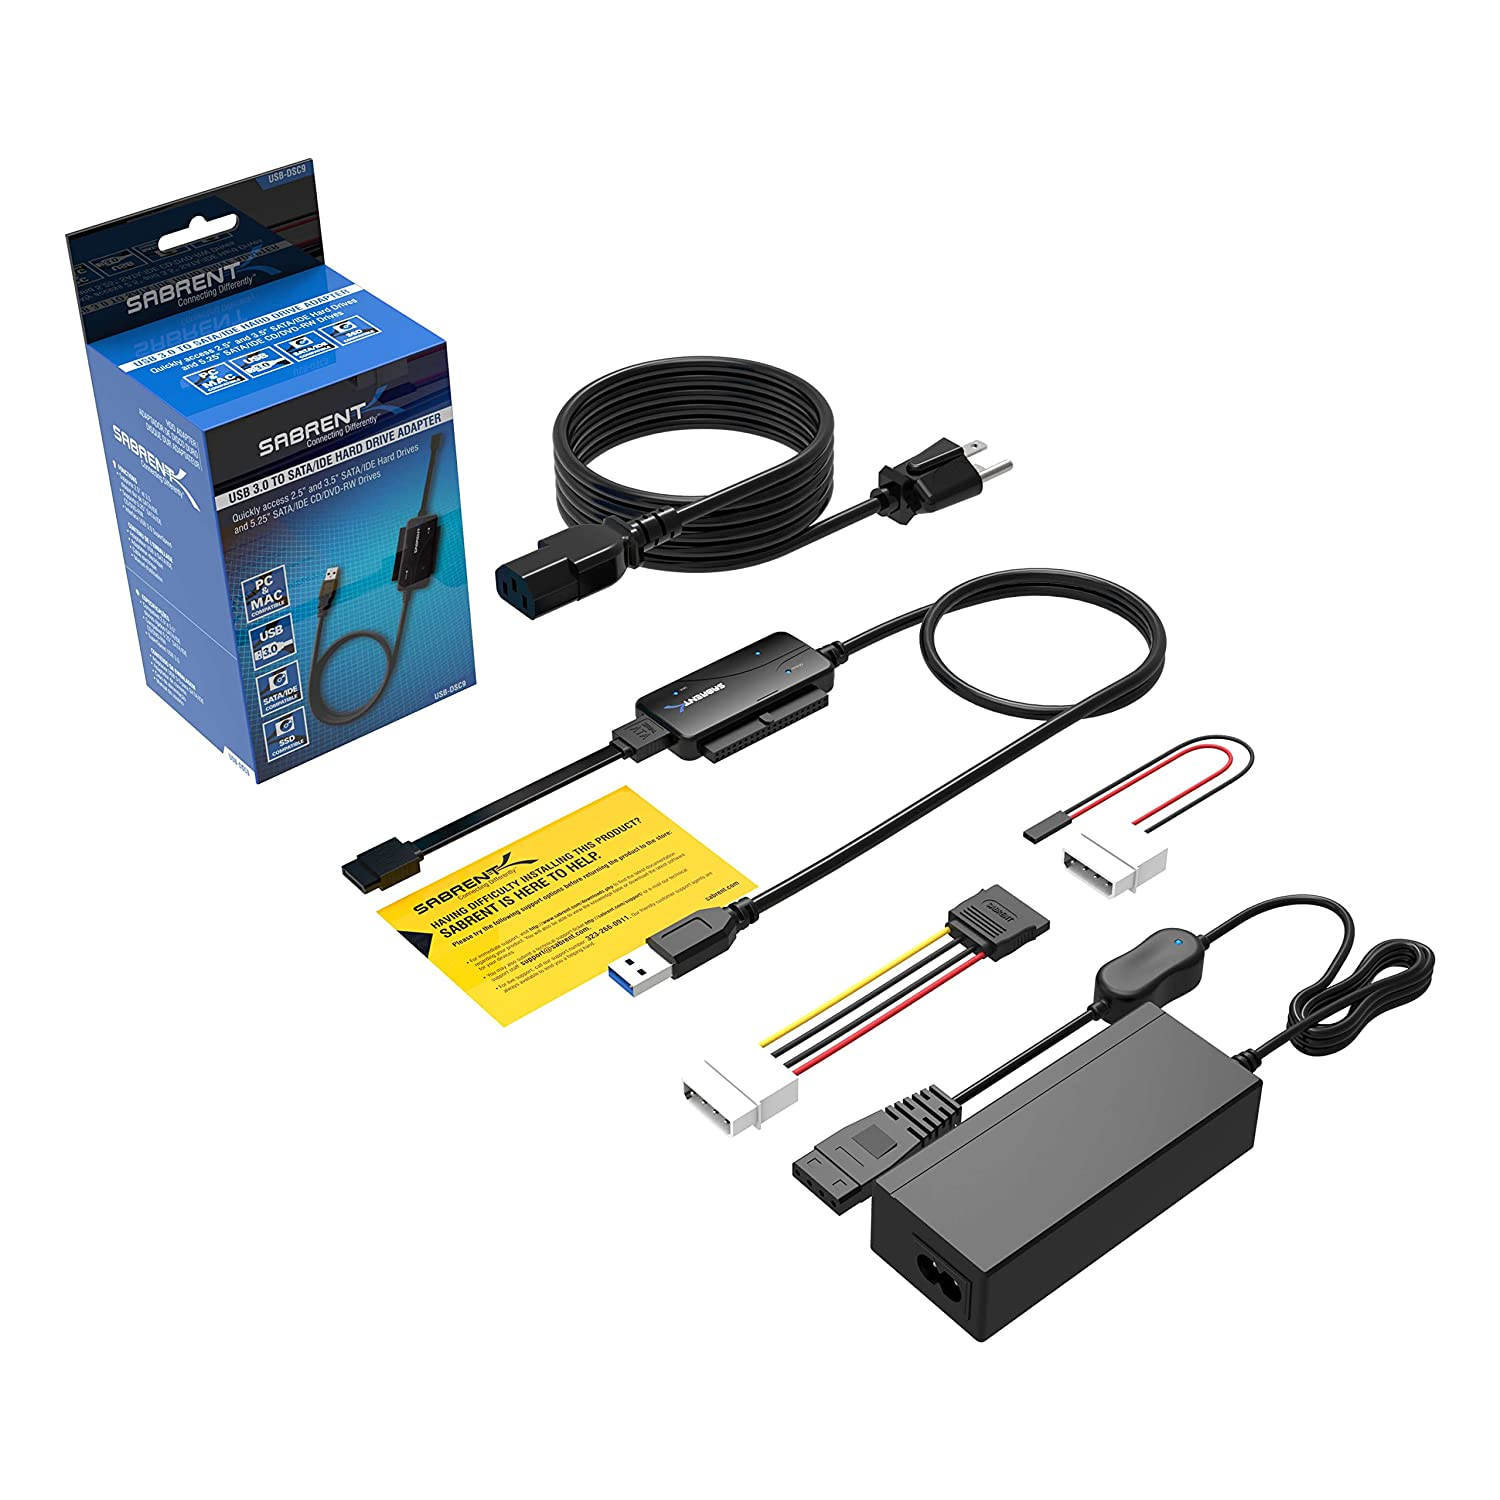 Sabrent Usb 30 To Sata Ide 25 35 525 Inch Hard Drive Wiring Diagram Converter With Power Supply Led Activity Lights 4tb Support Dsc9 Computers